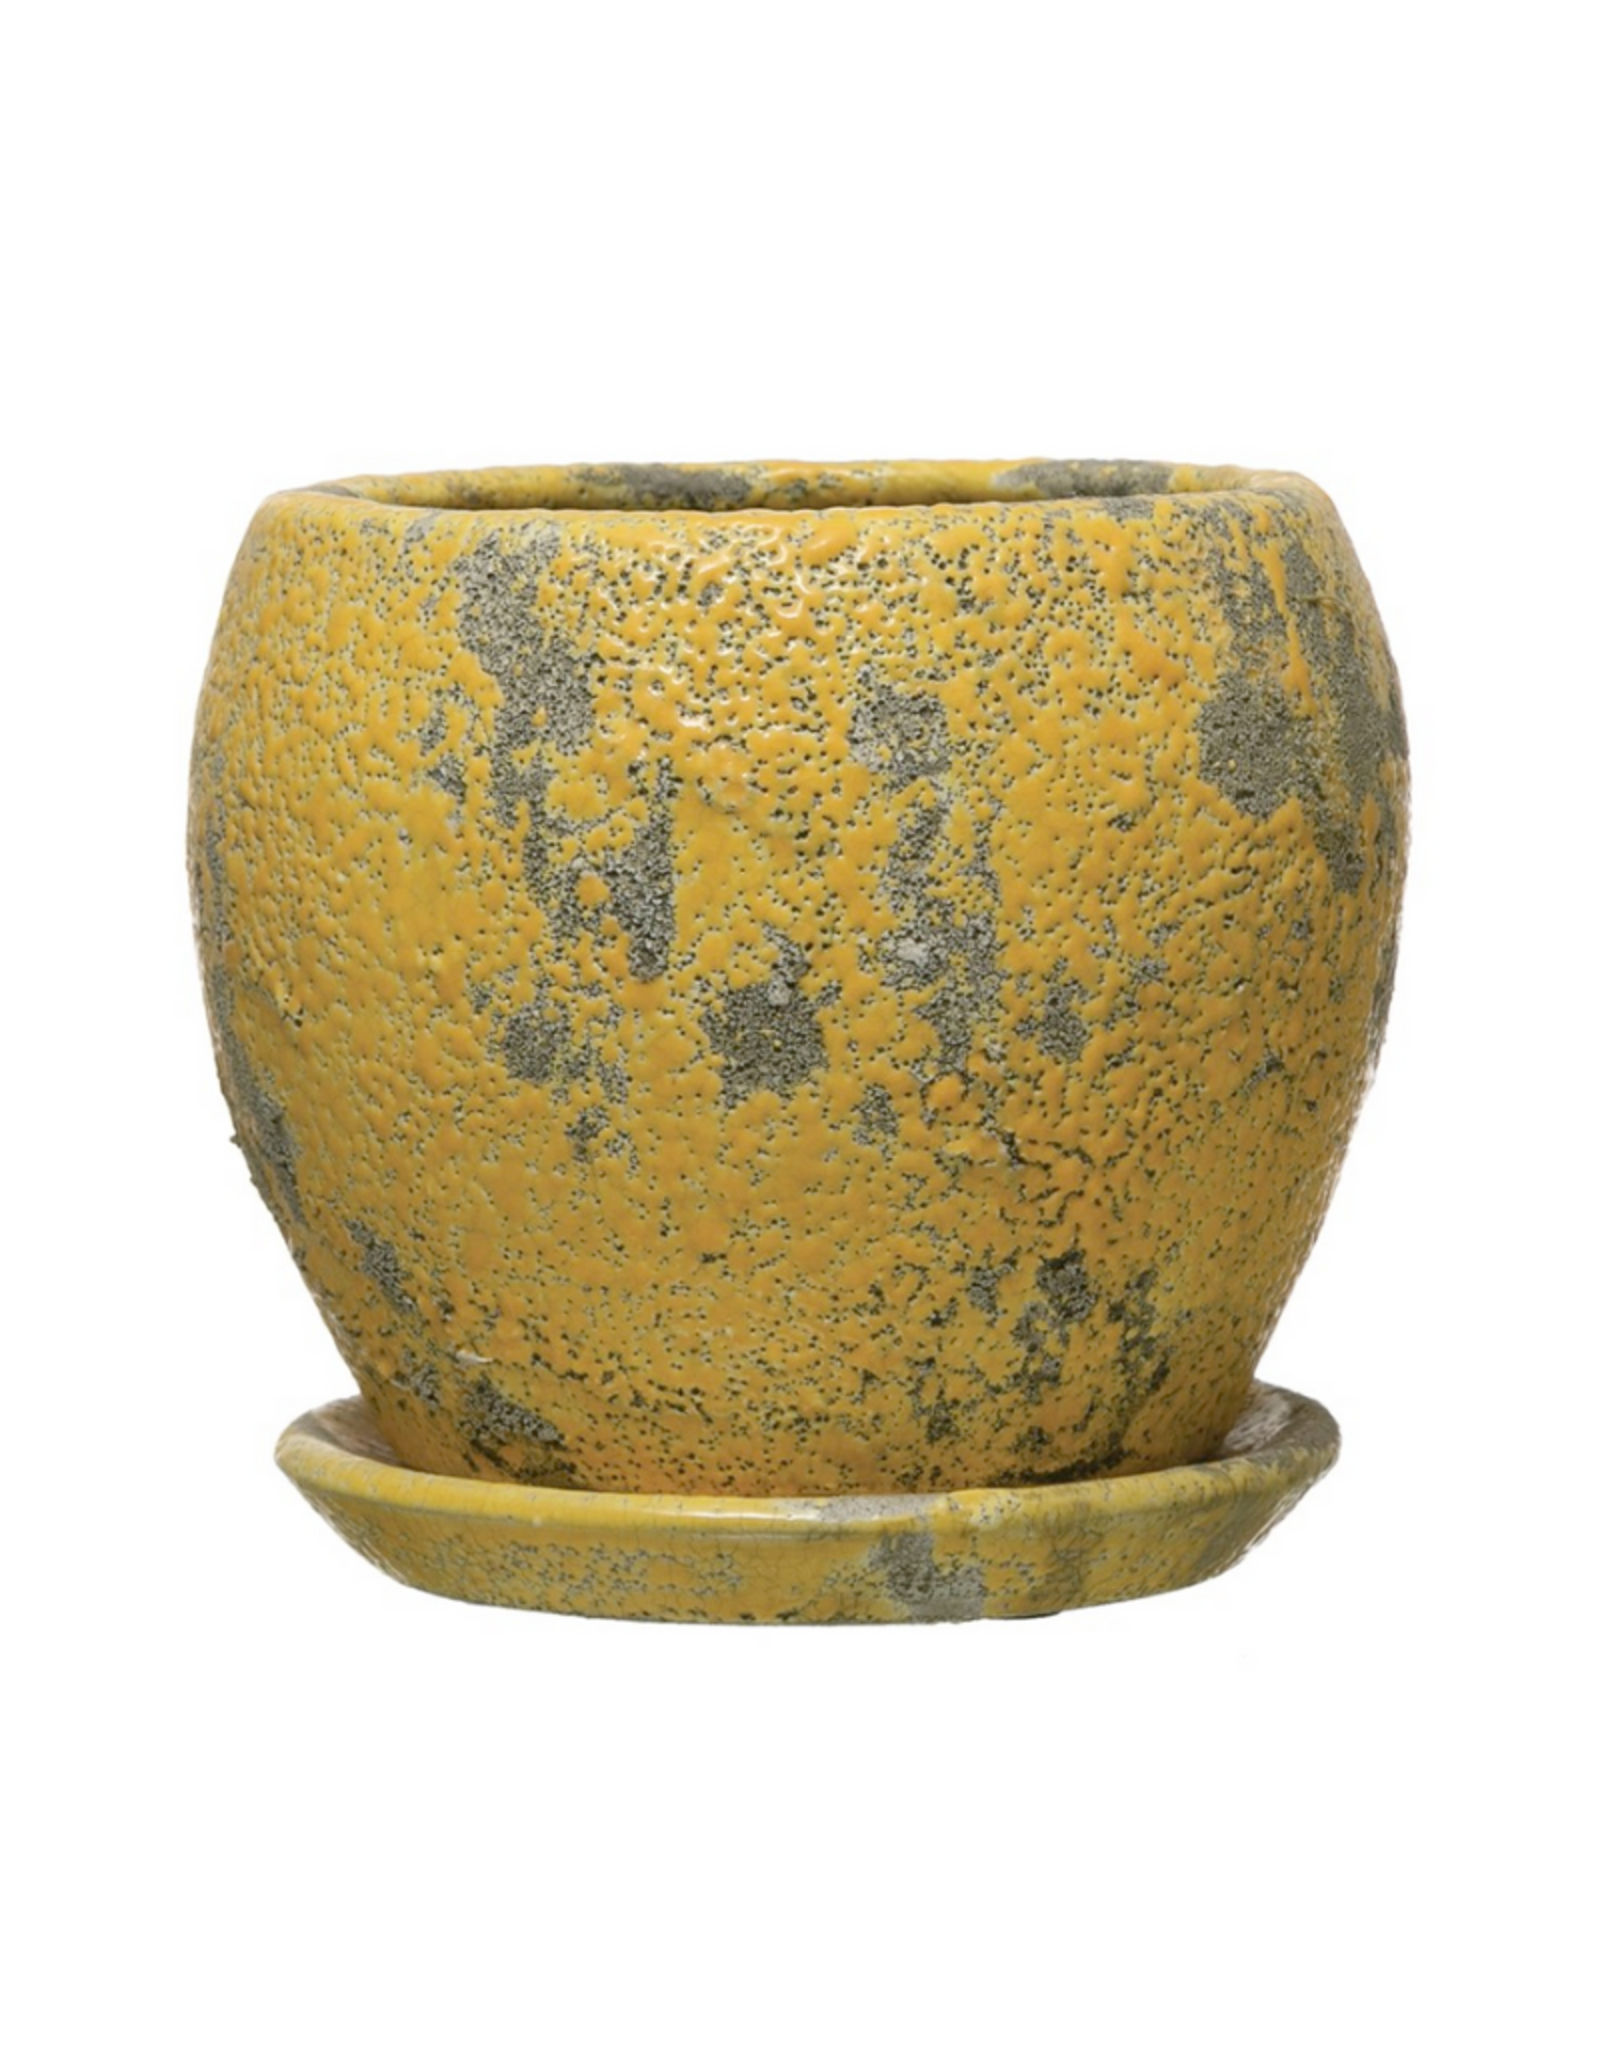 PLANTER W/SAUCER-YELLOW, TERRA-COTTA, HOLDS 4' POT